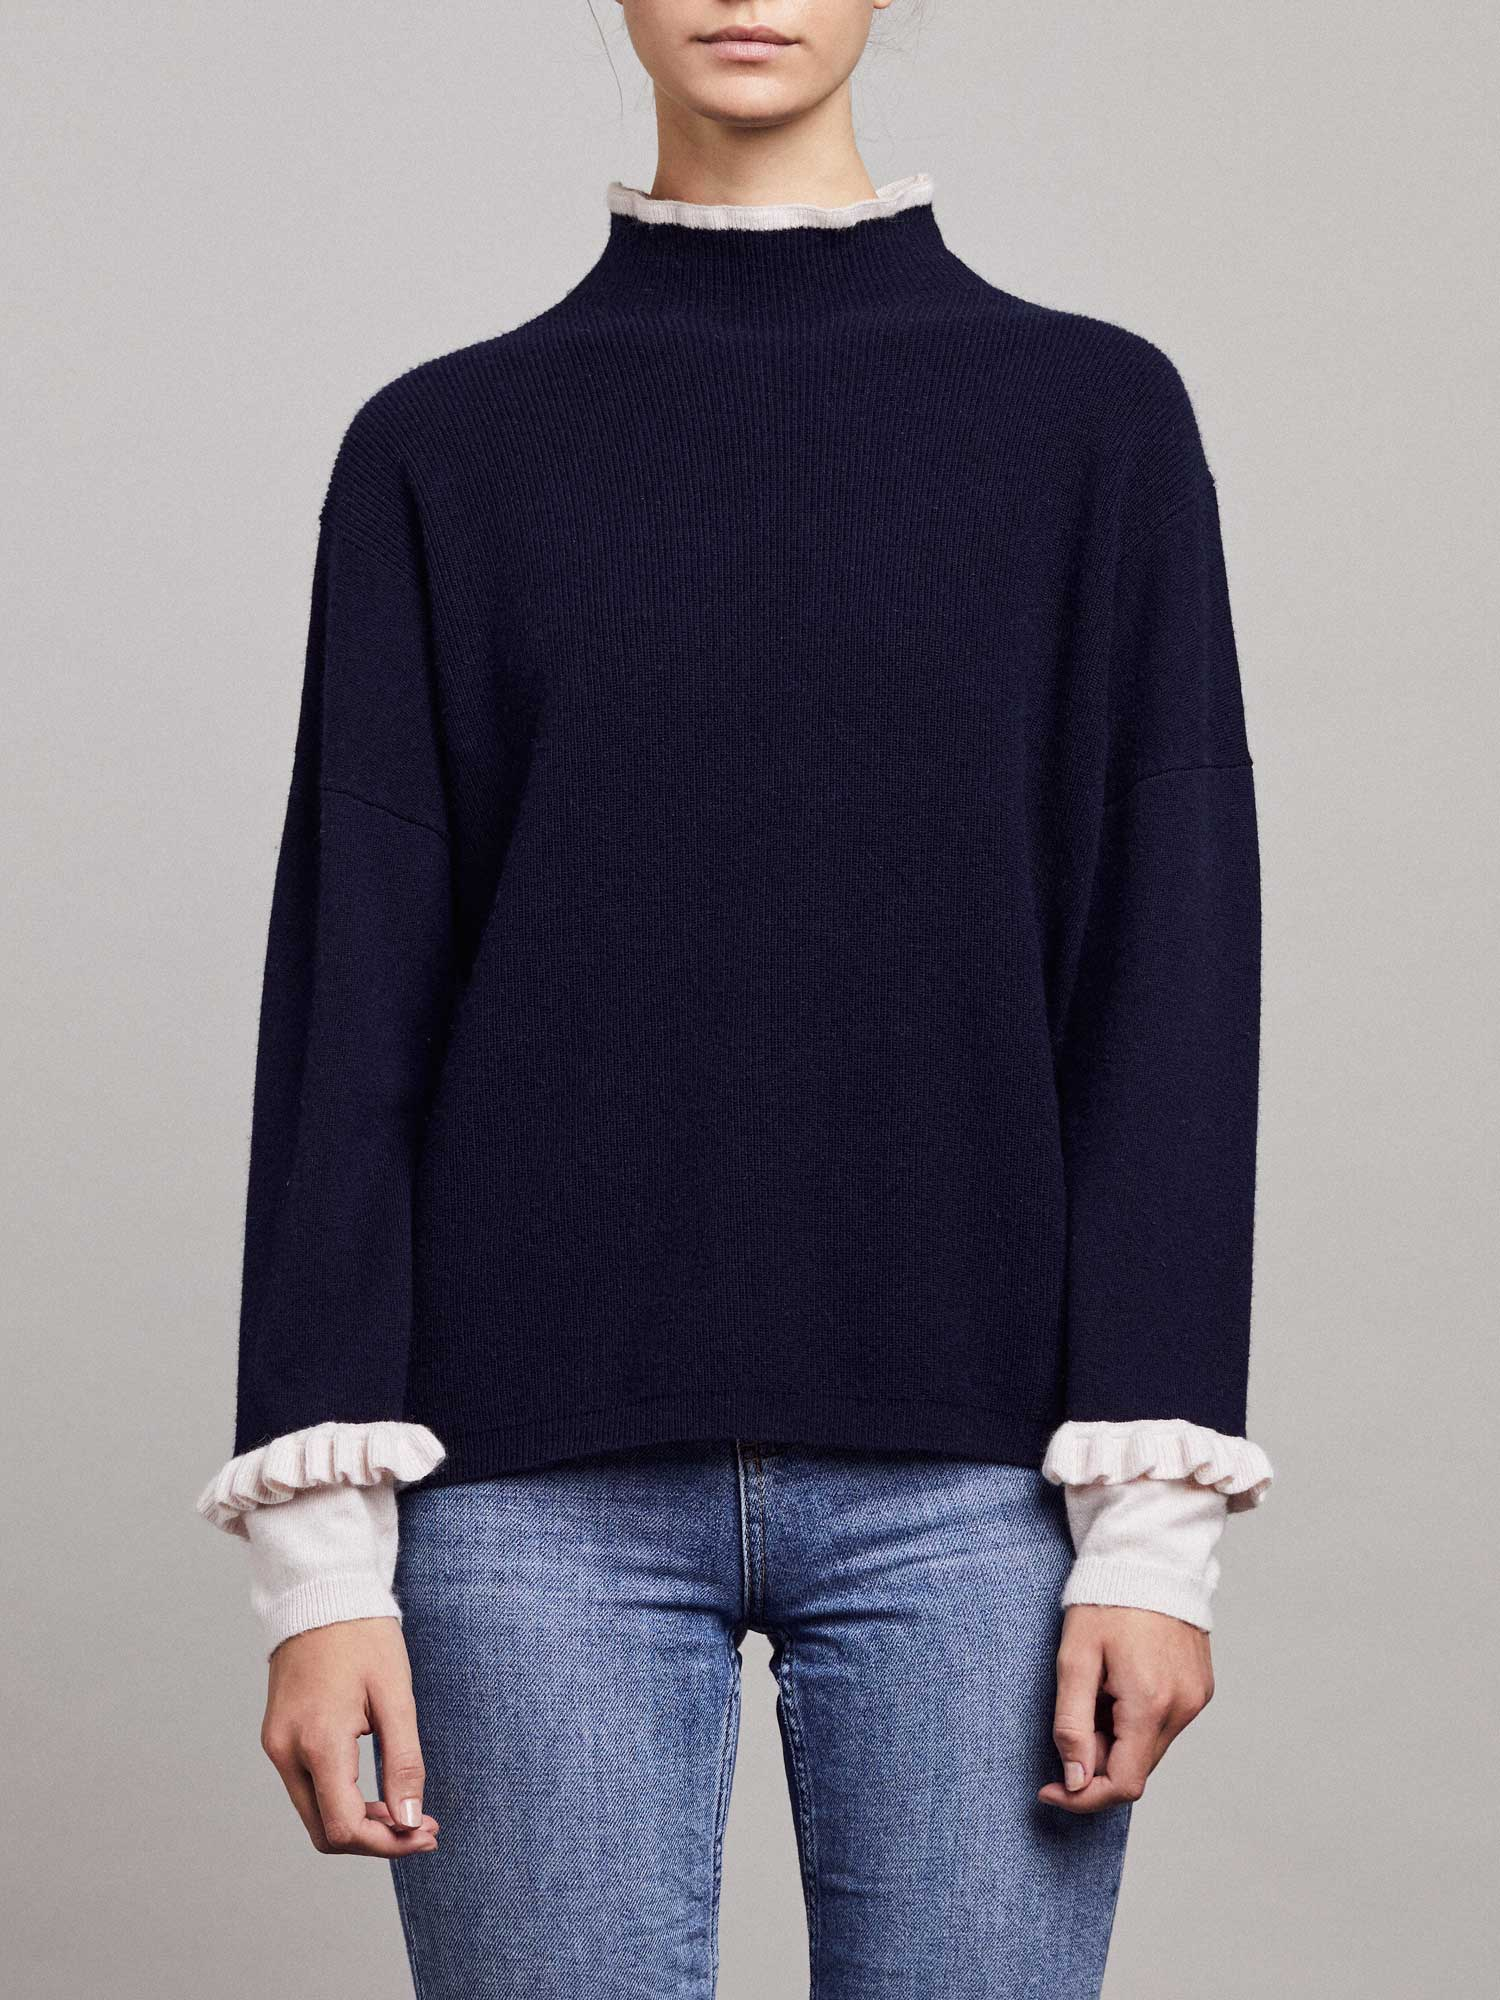 Grace Jumper – Yacht/Babe by LAM on curated-crowd.com